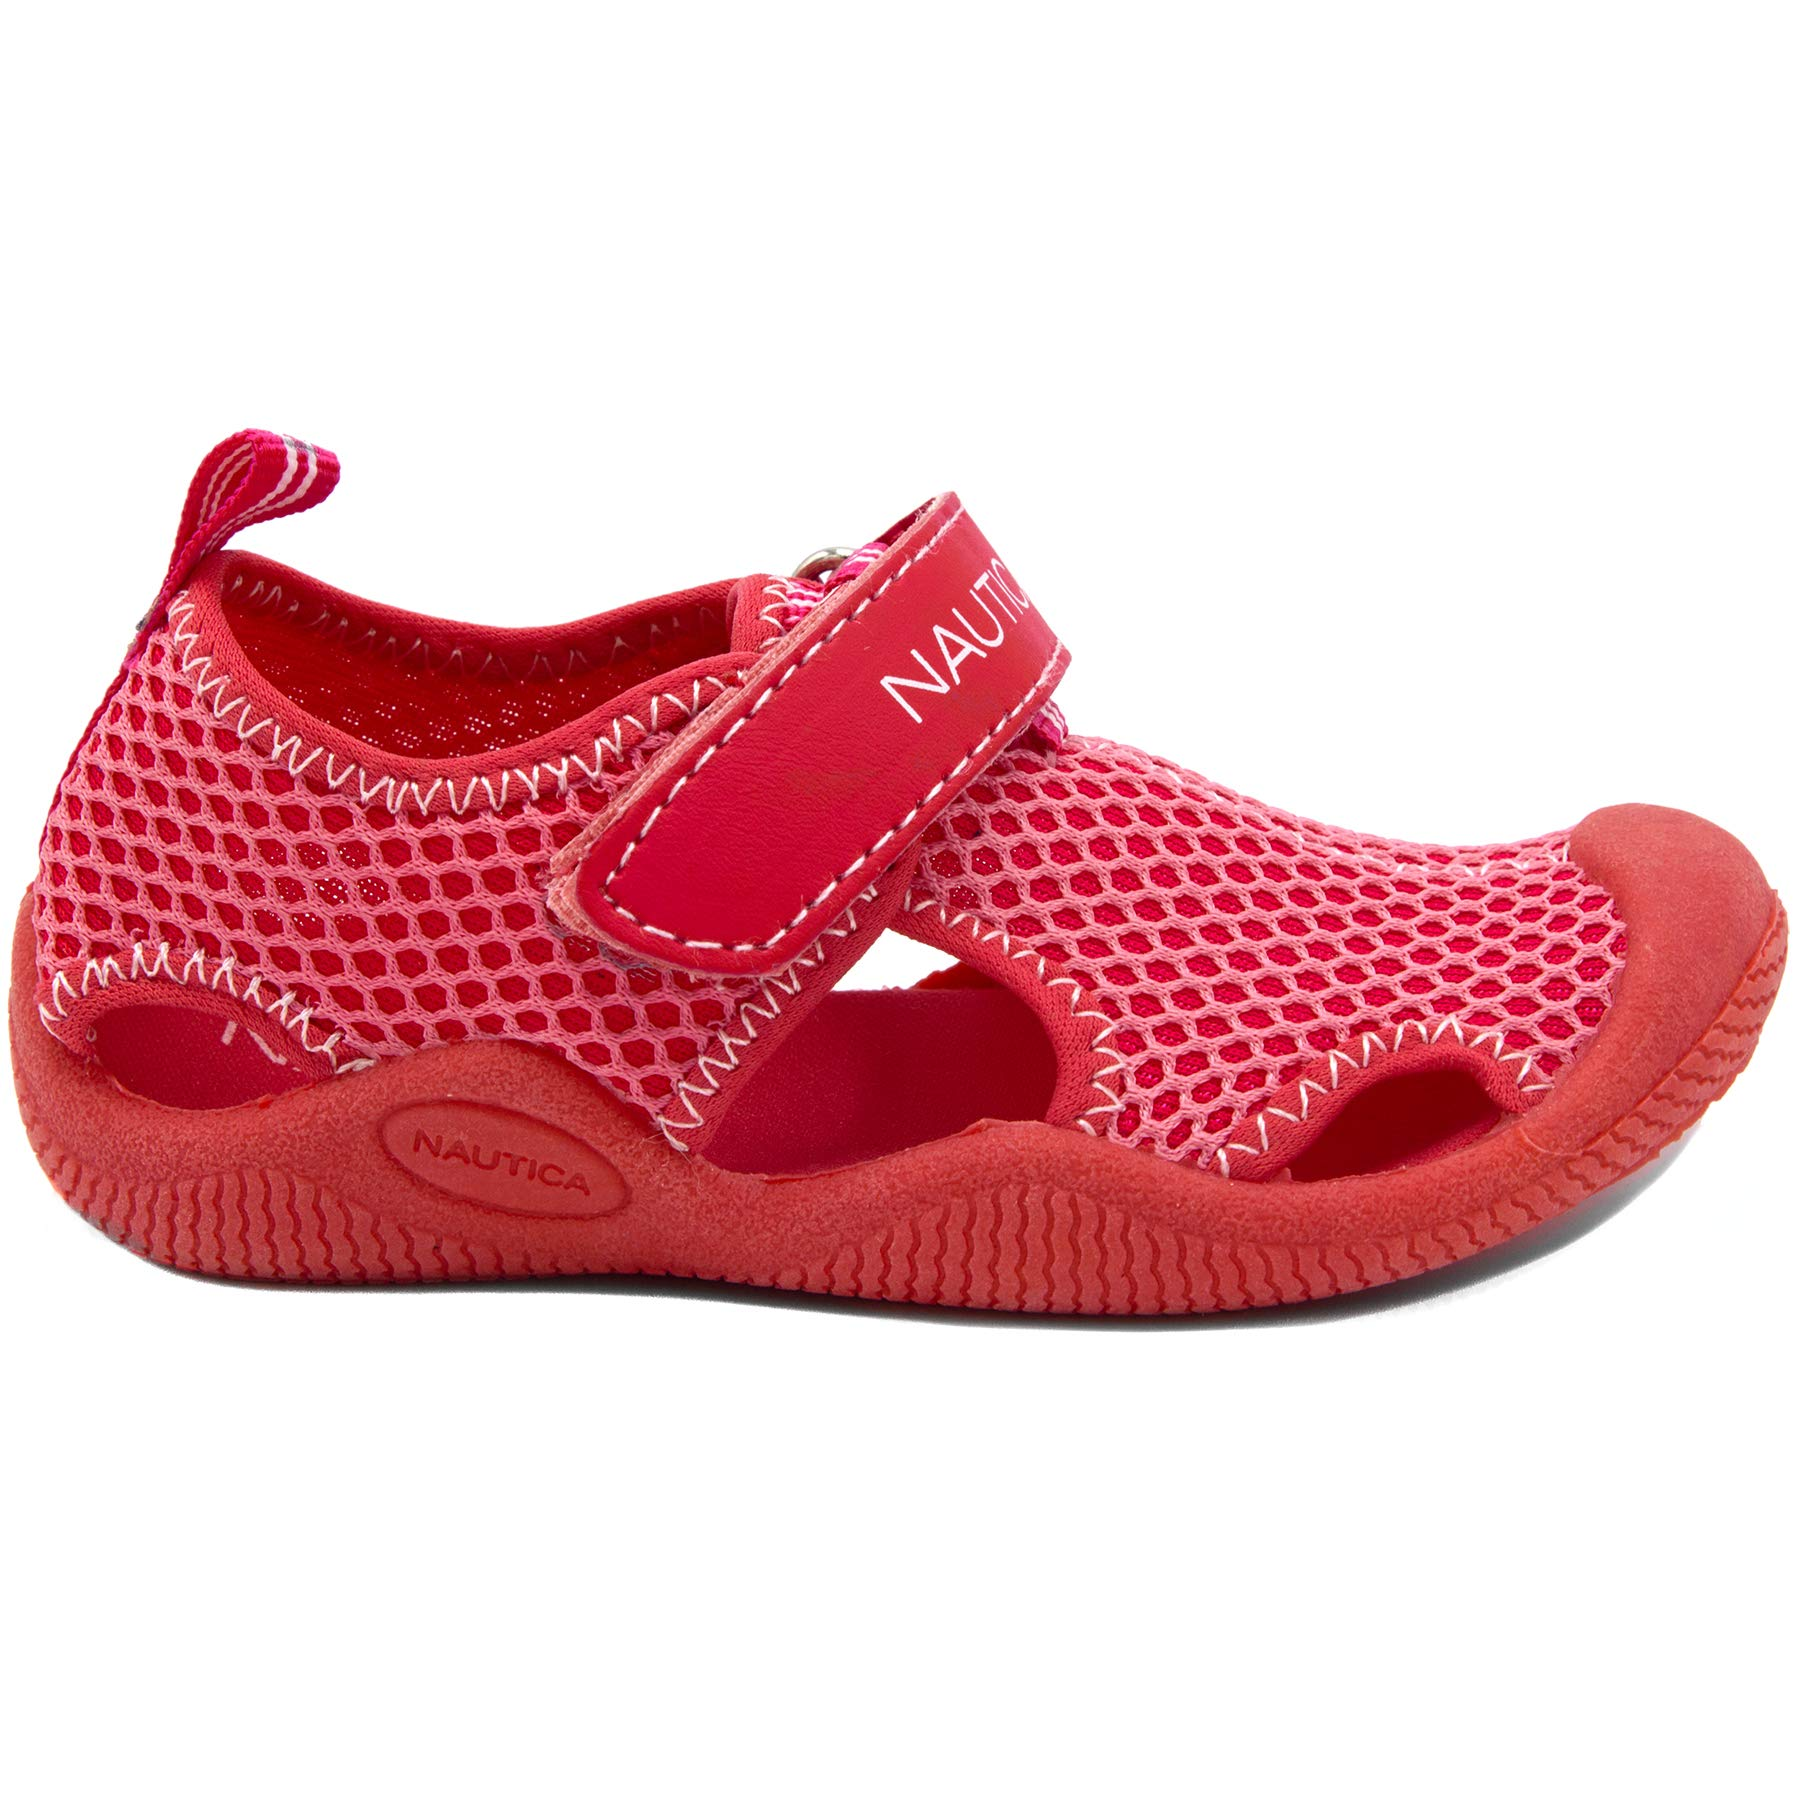 Nautica Kids Kettle Gulf Protective Water Shoe,Closed-Toe Sport Sandal-Pink/LT Pink-7 by Nautica (Image #2)